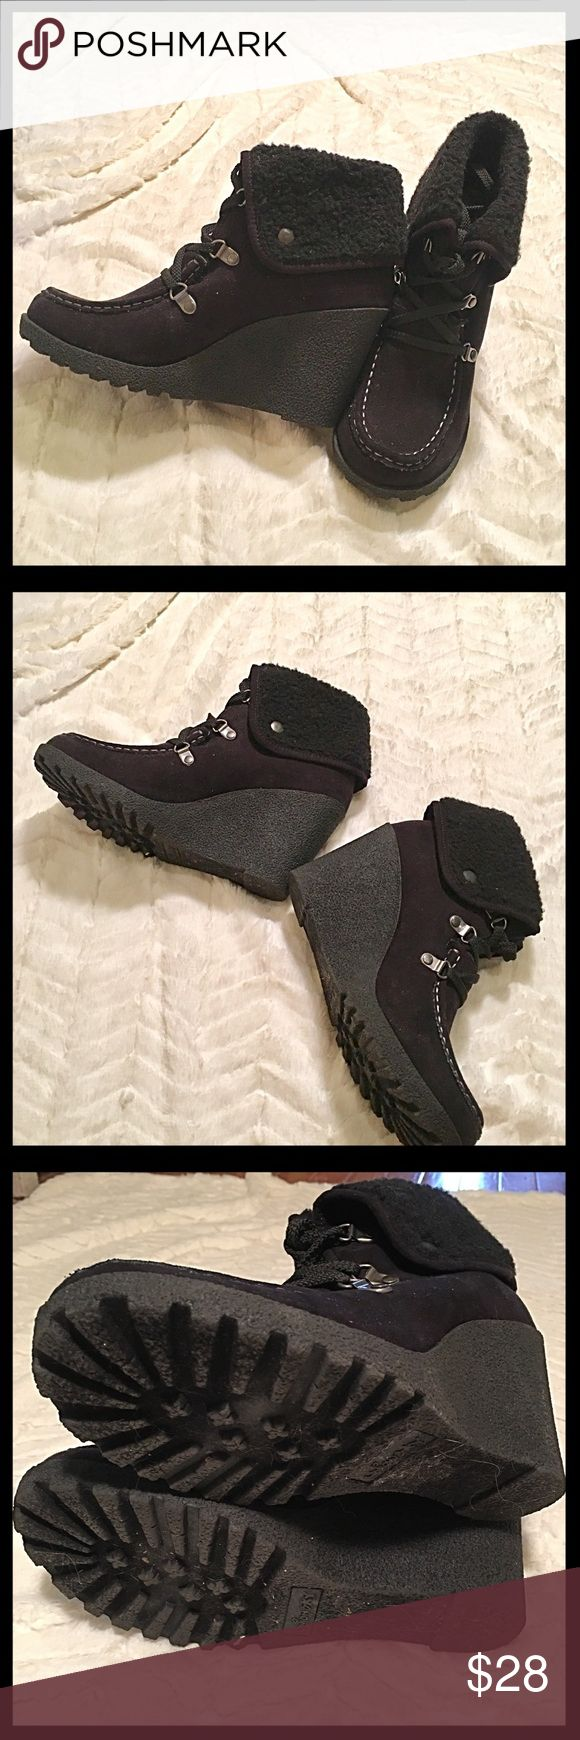 Black Wedge Ankle Boots These black wedge ankle boots have been worn only once. Faux fur lined inside and around top that can be unsnapped to come up higher on the leg. I have too many boots and booties so need to let some go. 😣 UNIONBAY Shoes Ankle Boots & Booties